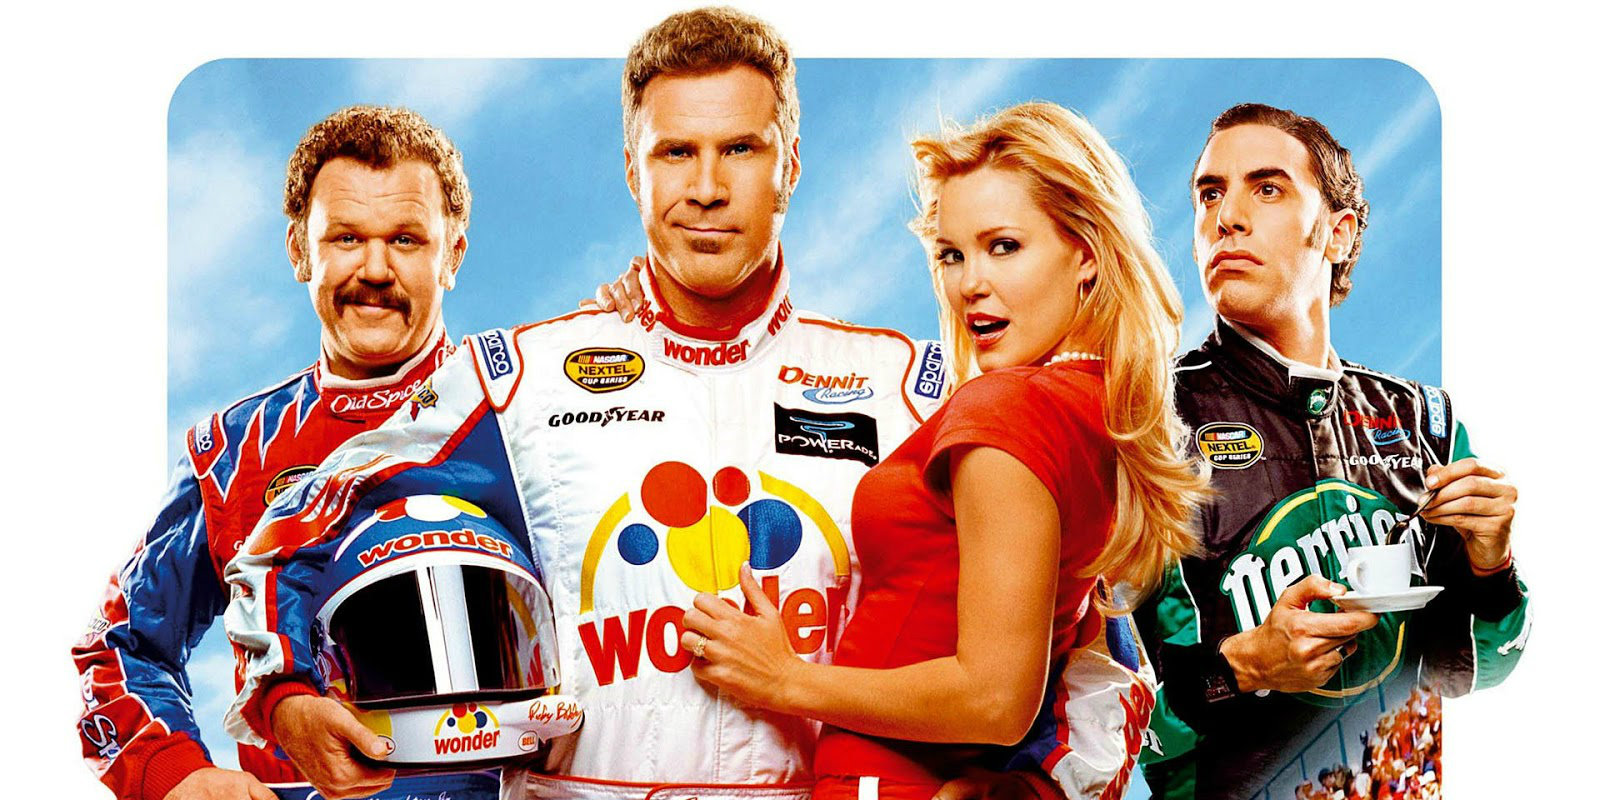 Talladega Nights - Will Ferrell